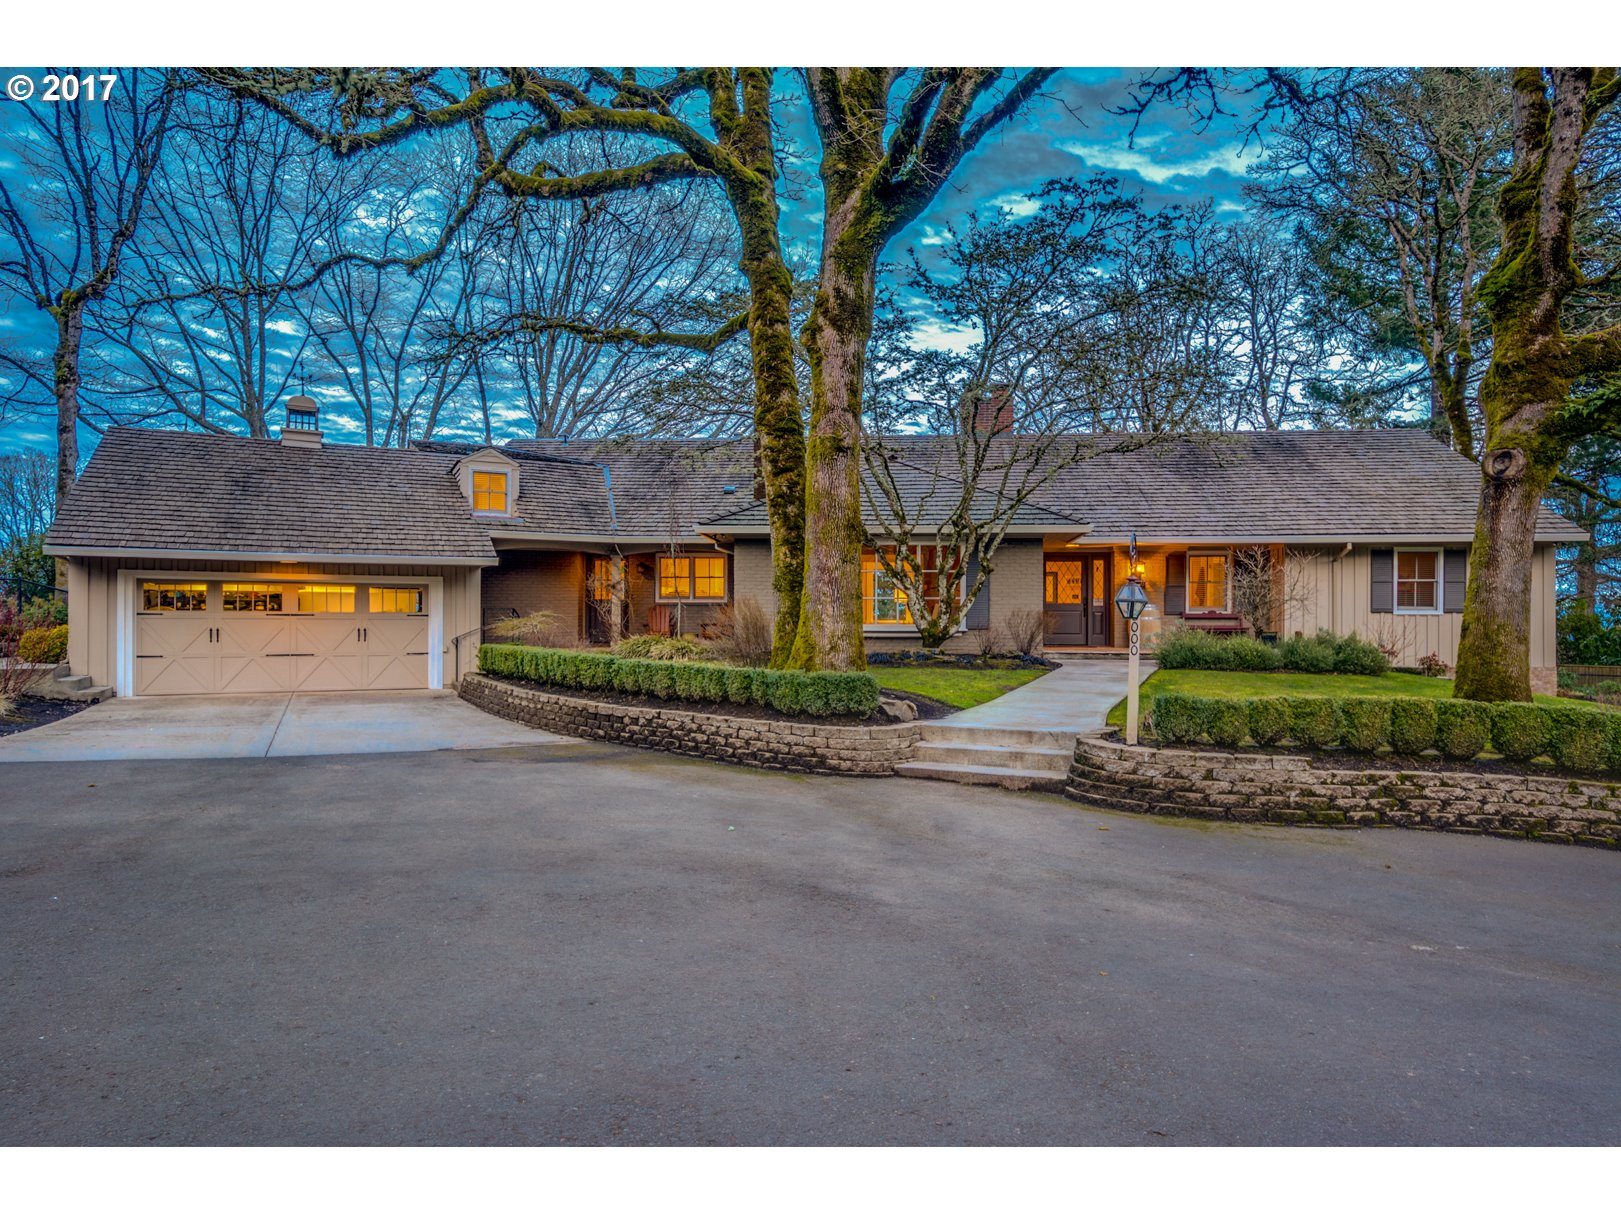 18000 EASTRIDGE LN, Lake Oswego, OR 97034